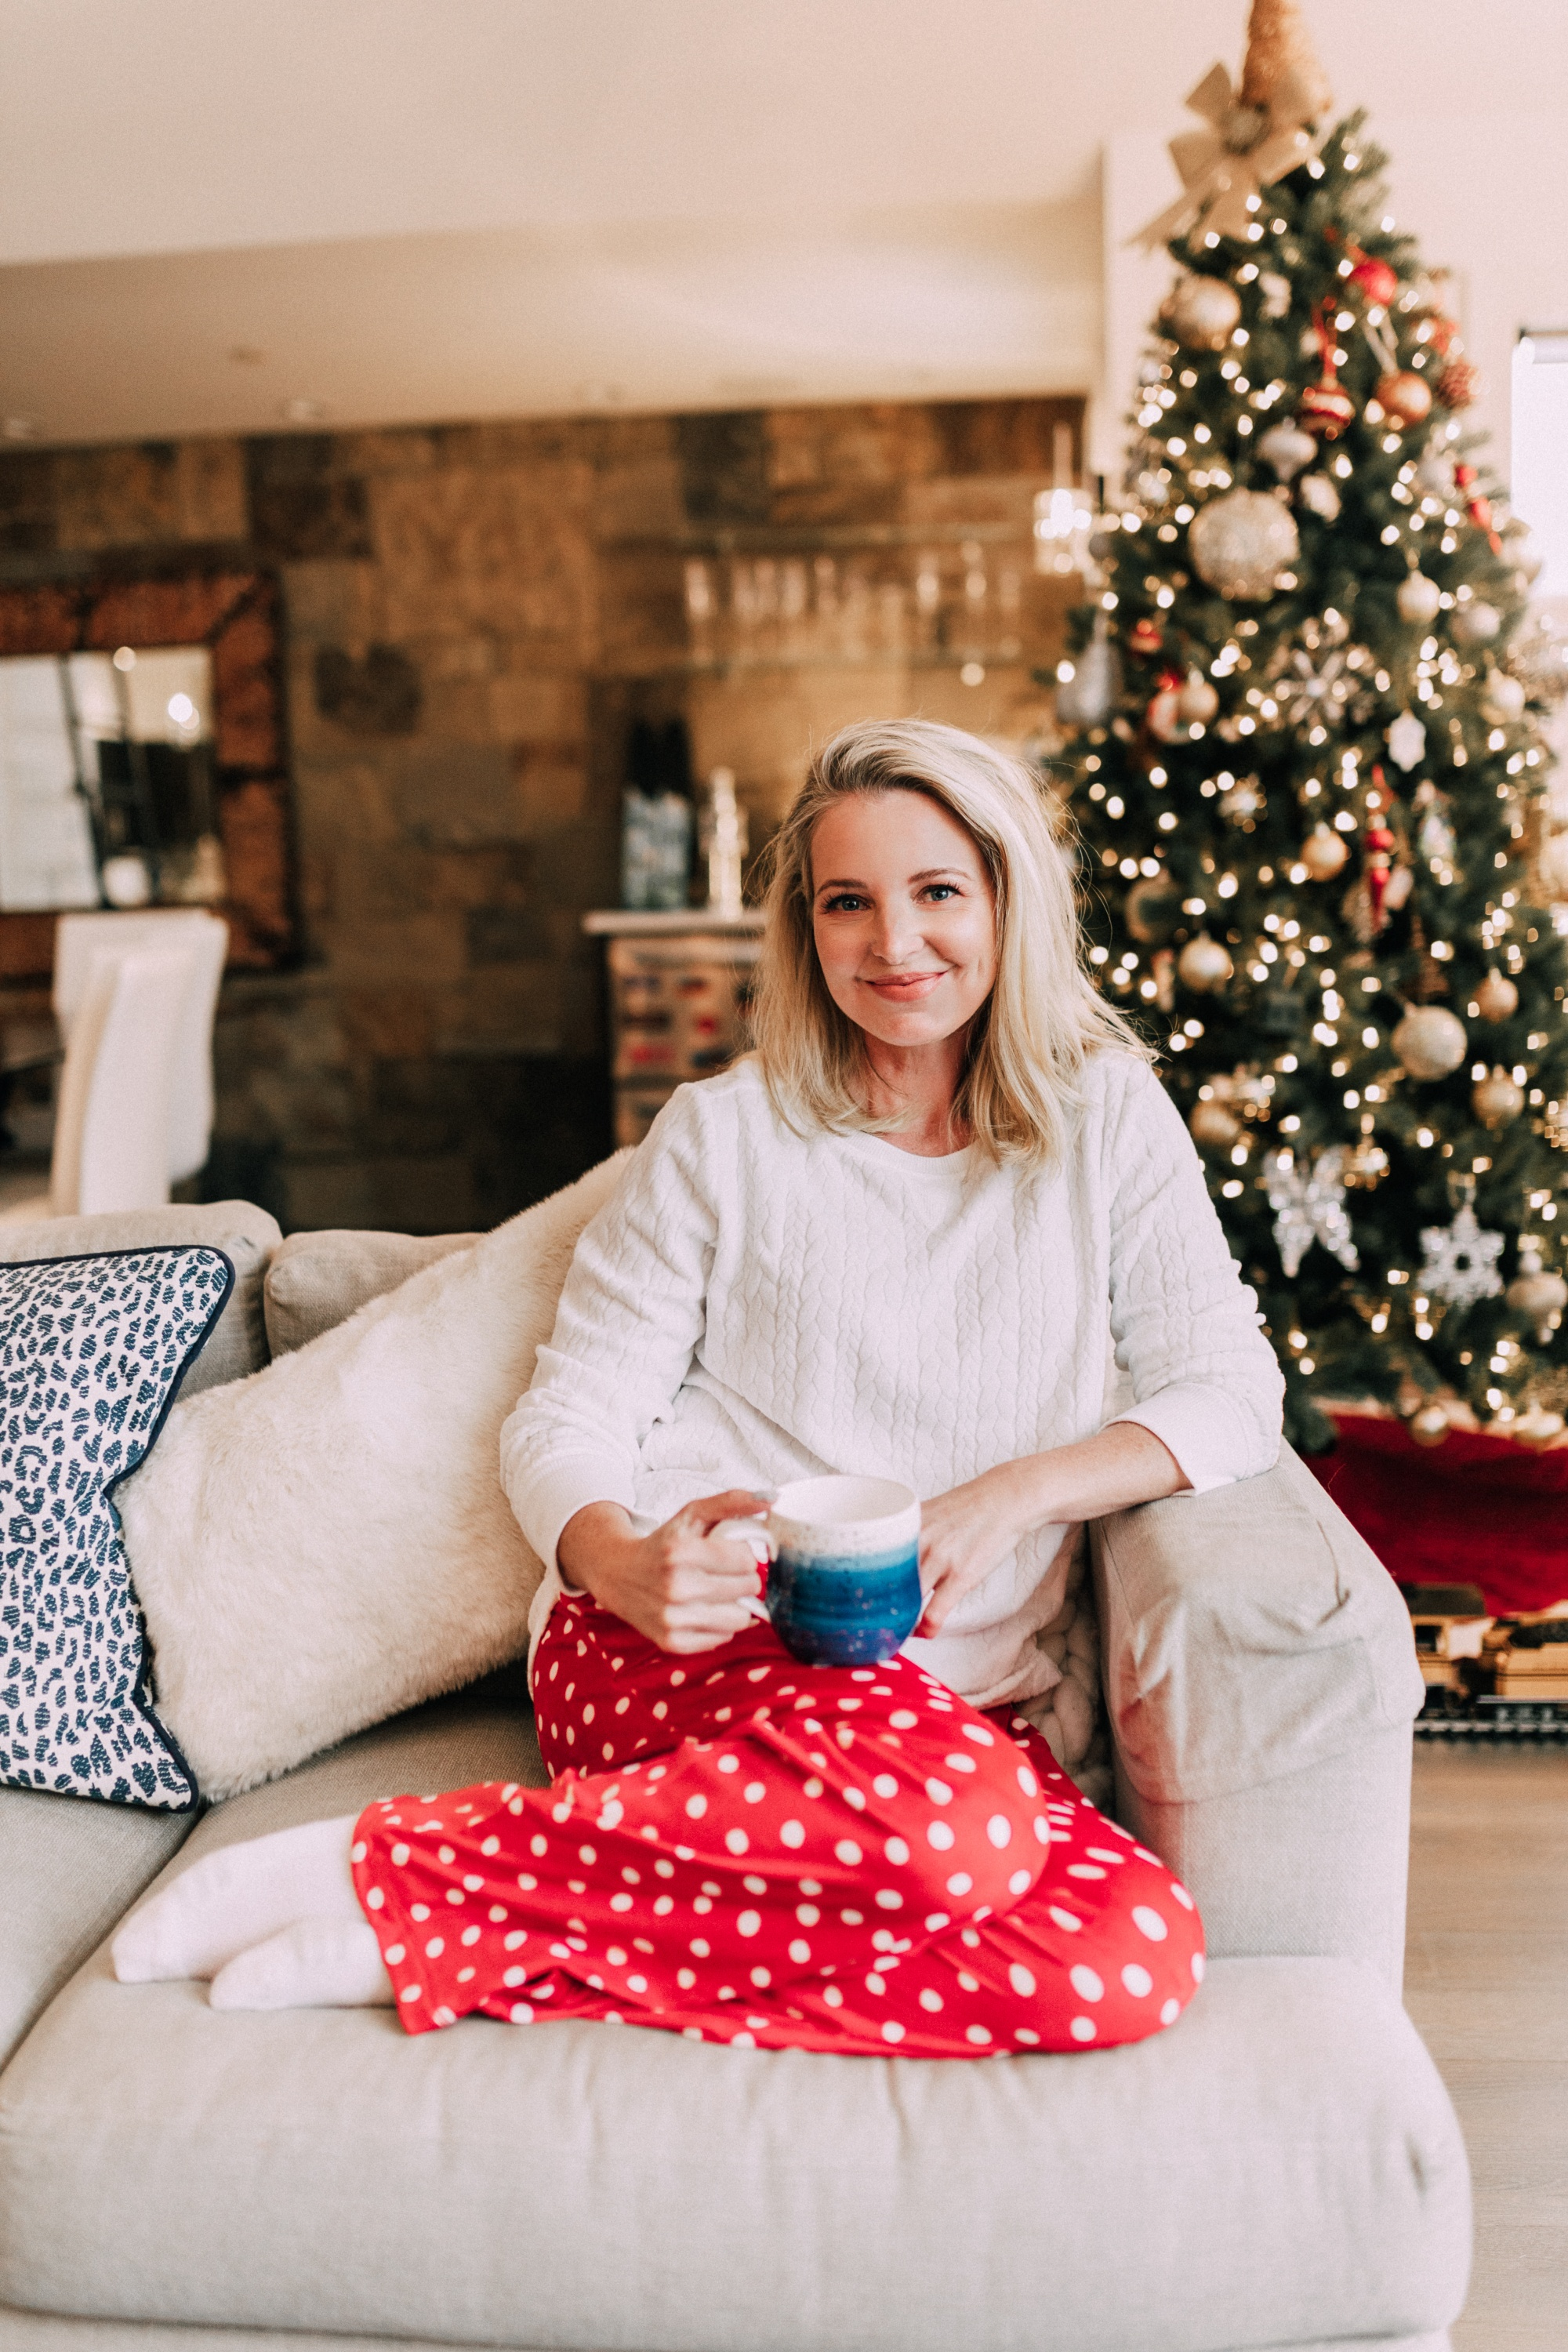 Holiday Traditions, Fashion blogger Erin Busbee of BusbeeStyle.com wearing red fleece polka dot pajama pants with a fleece cable knit pullover from Jockey in Telluride, CO